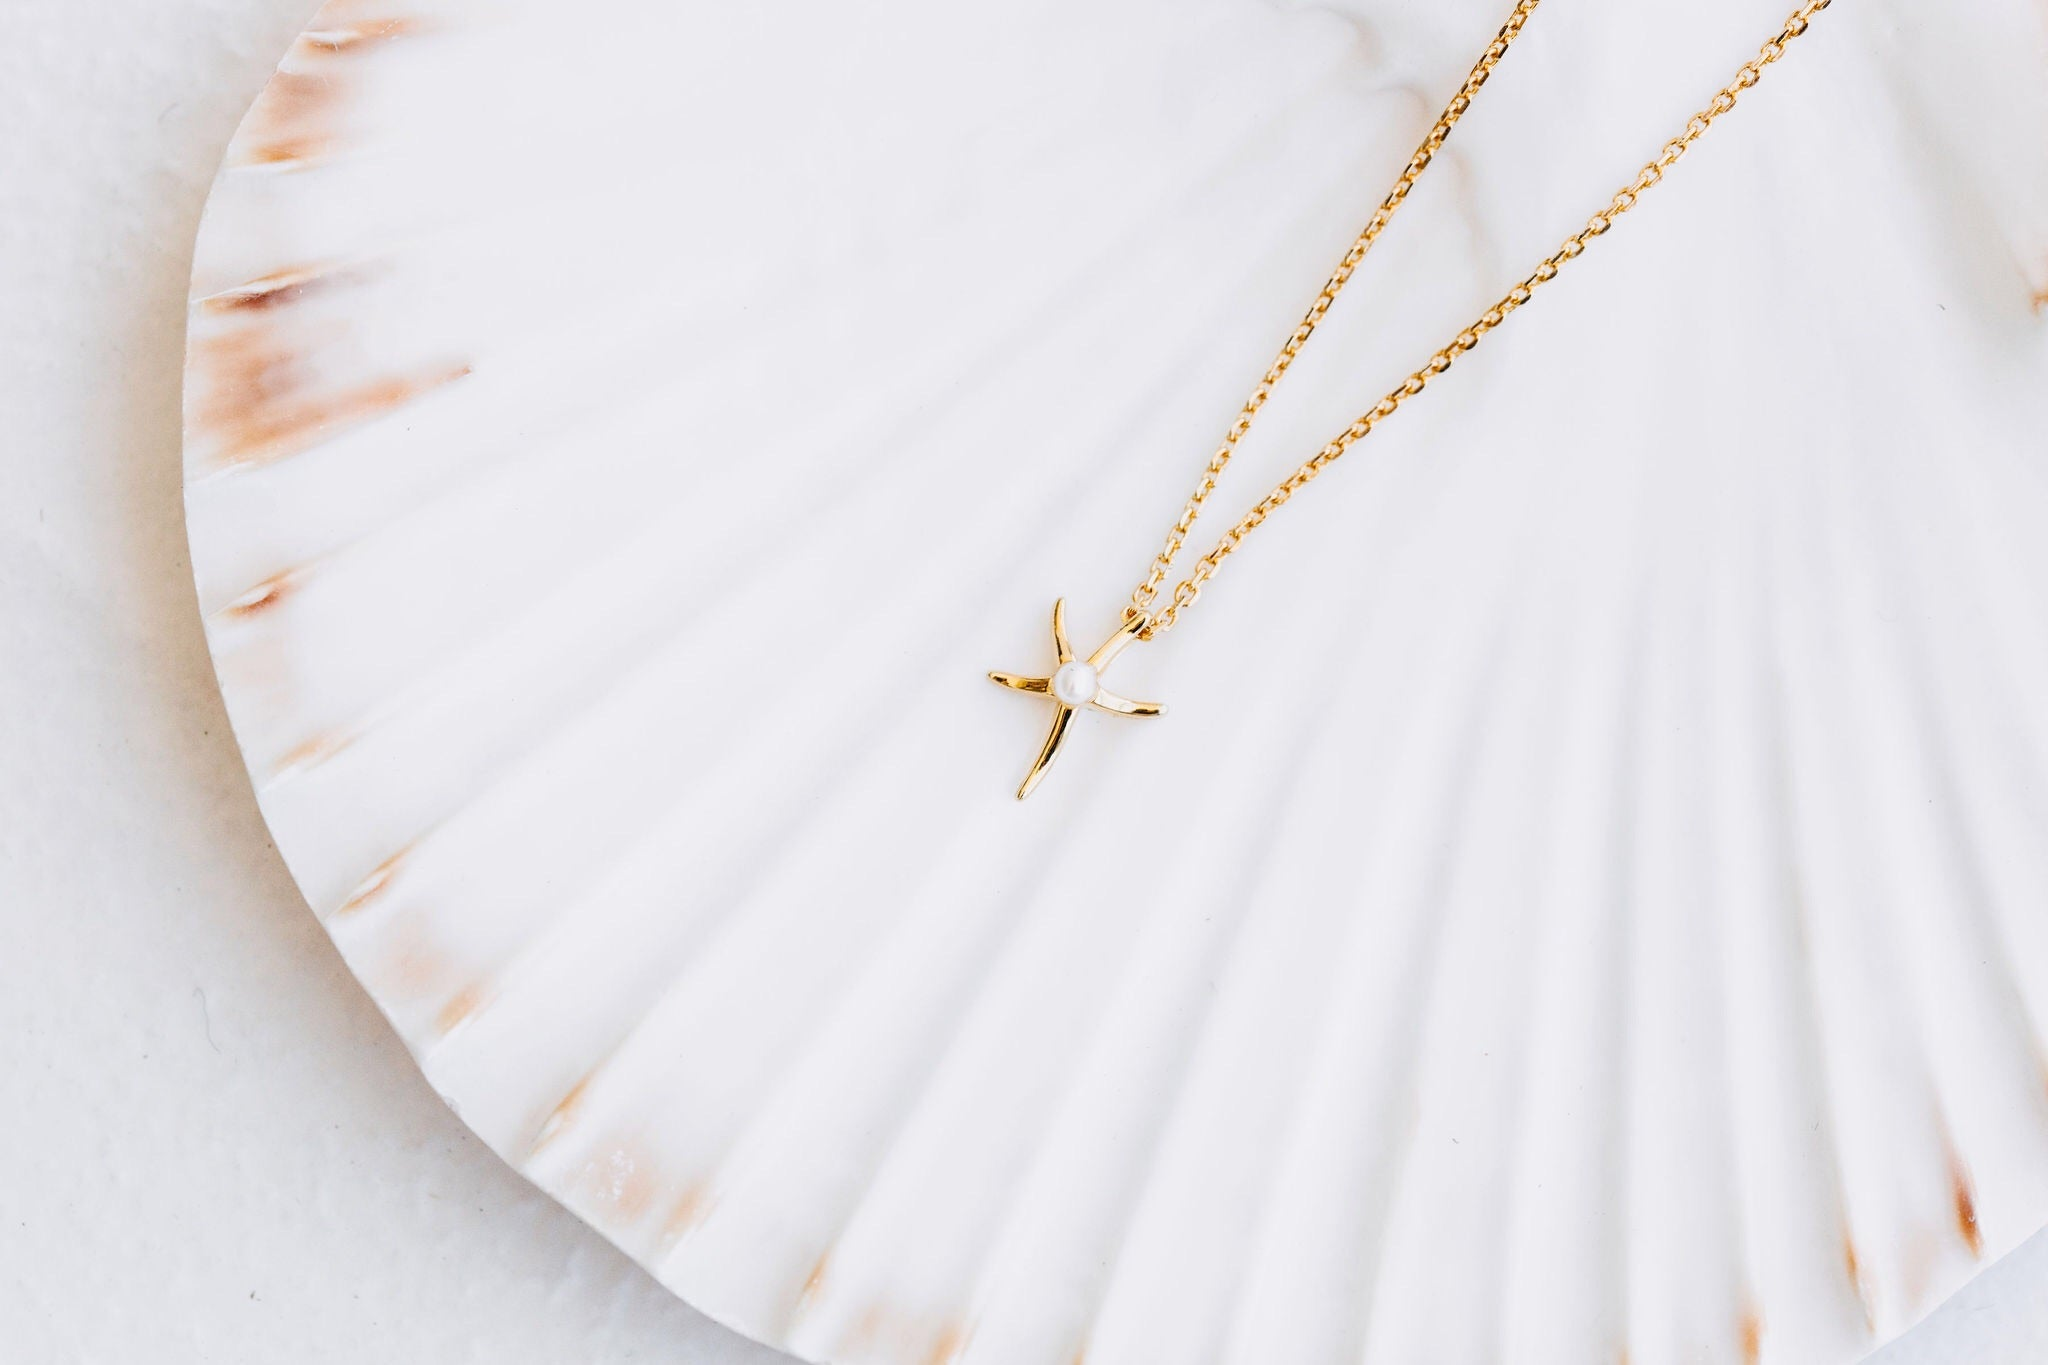 Ningaloo starfish necklace, sterling silver, rose gold plated